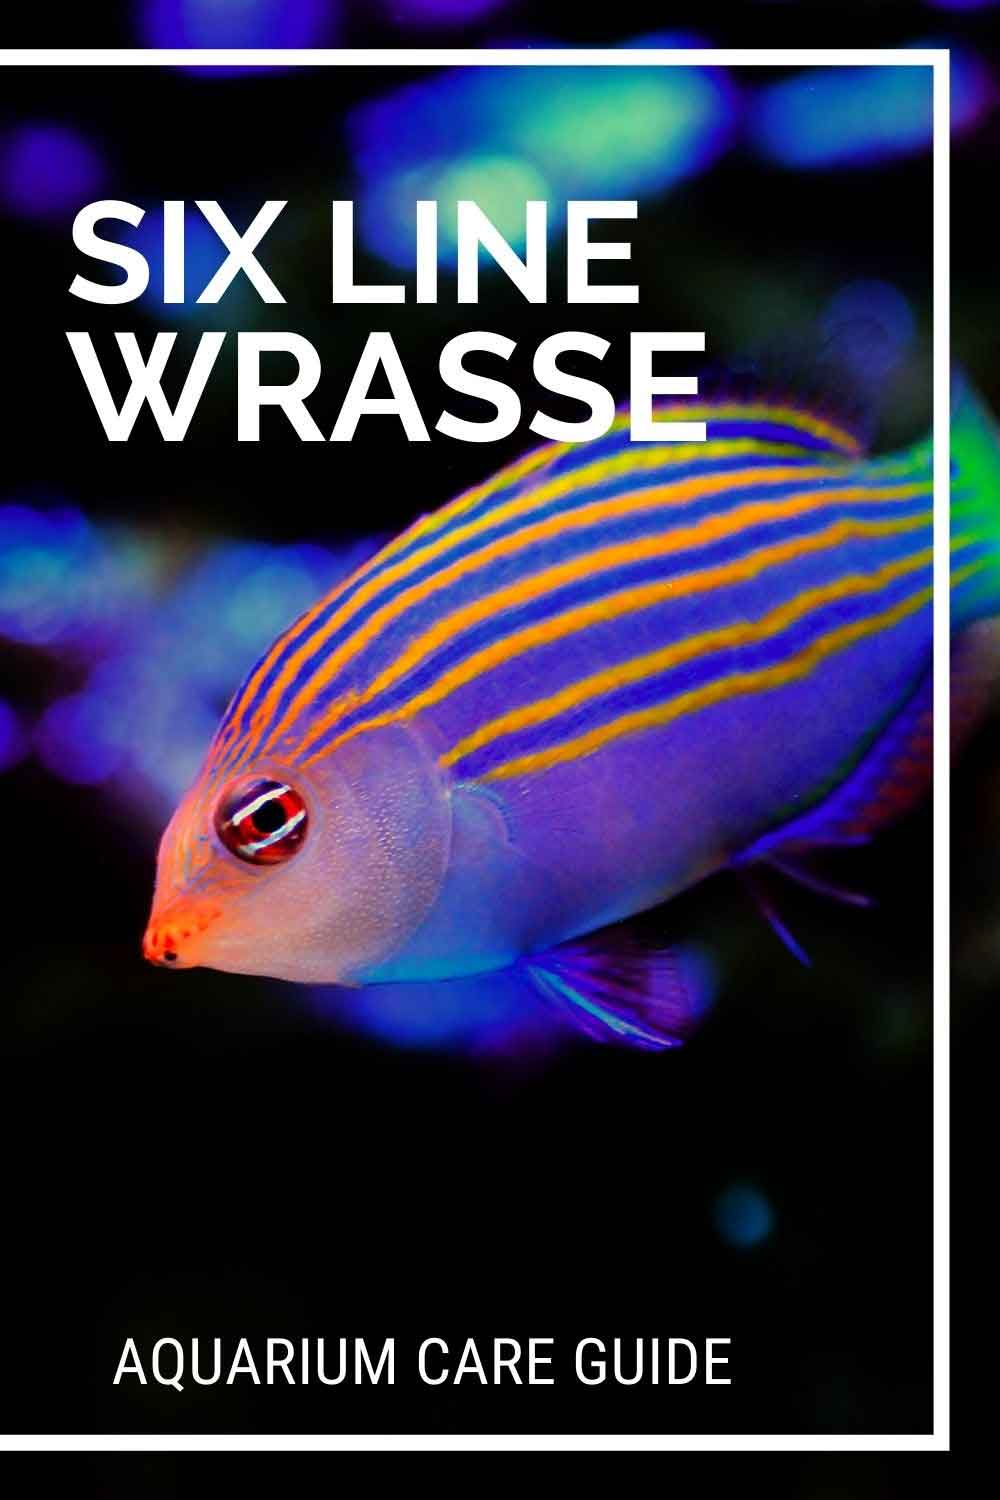 Six line wrasse aquarium care guide